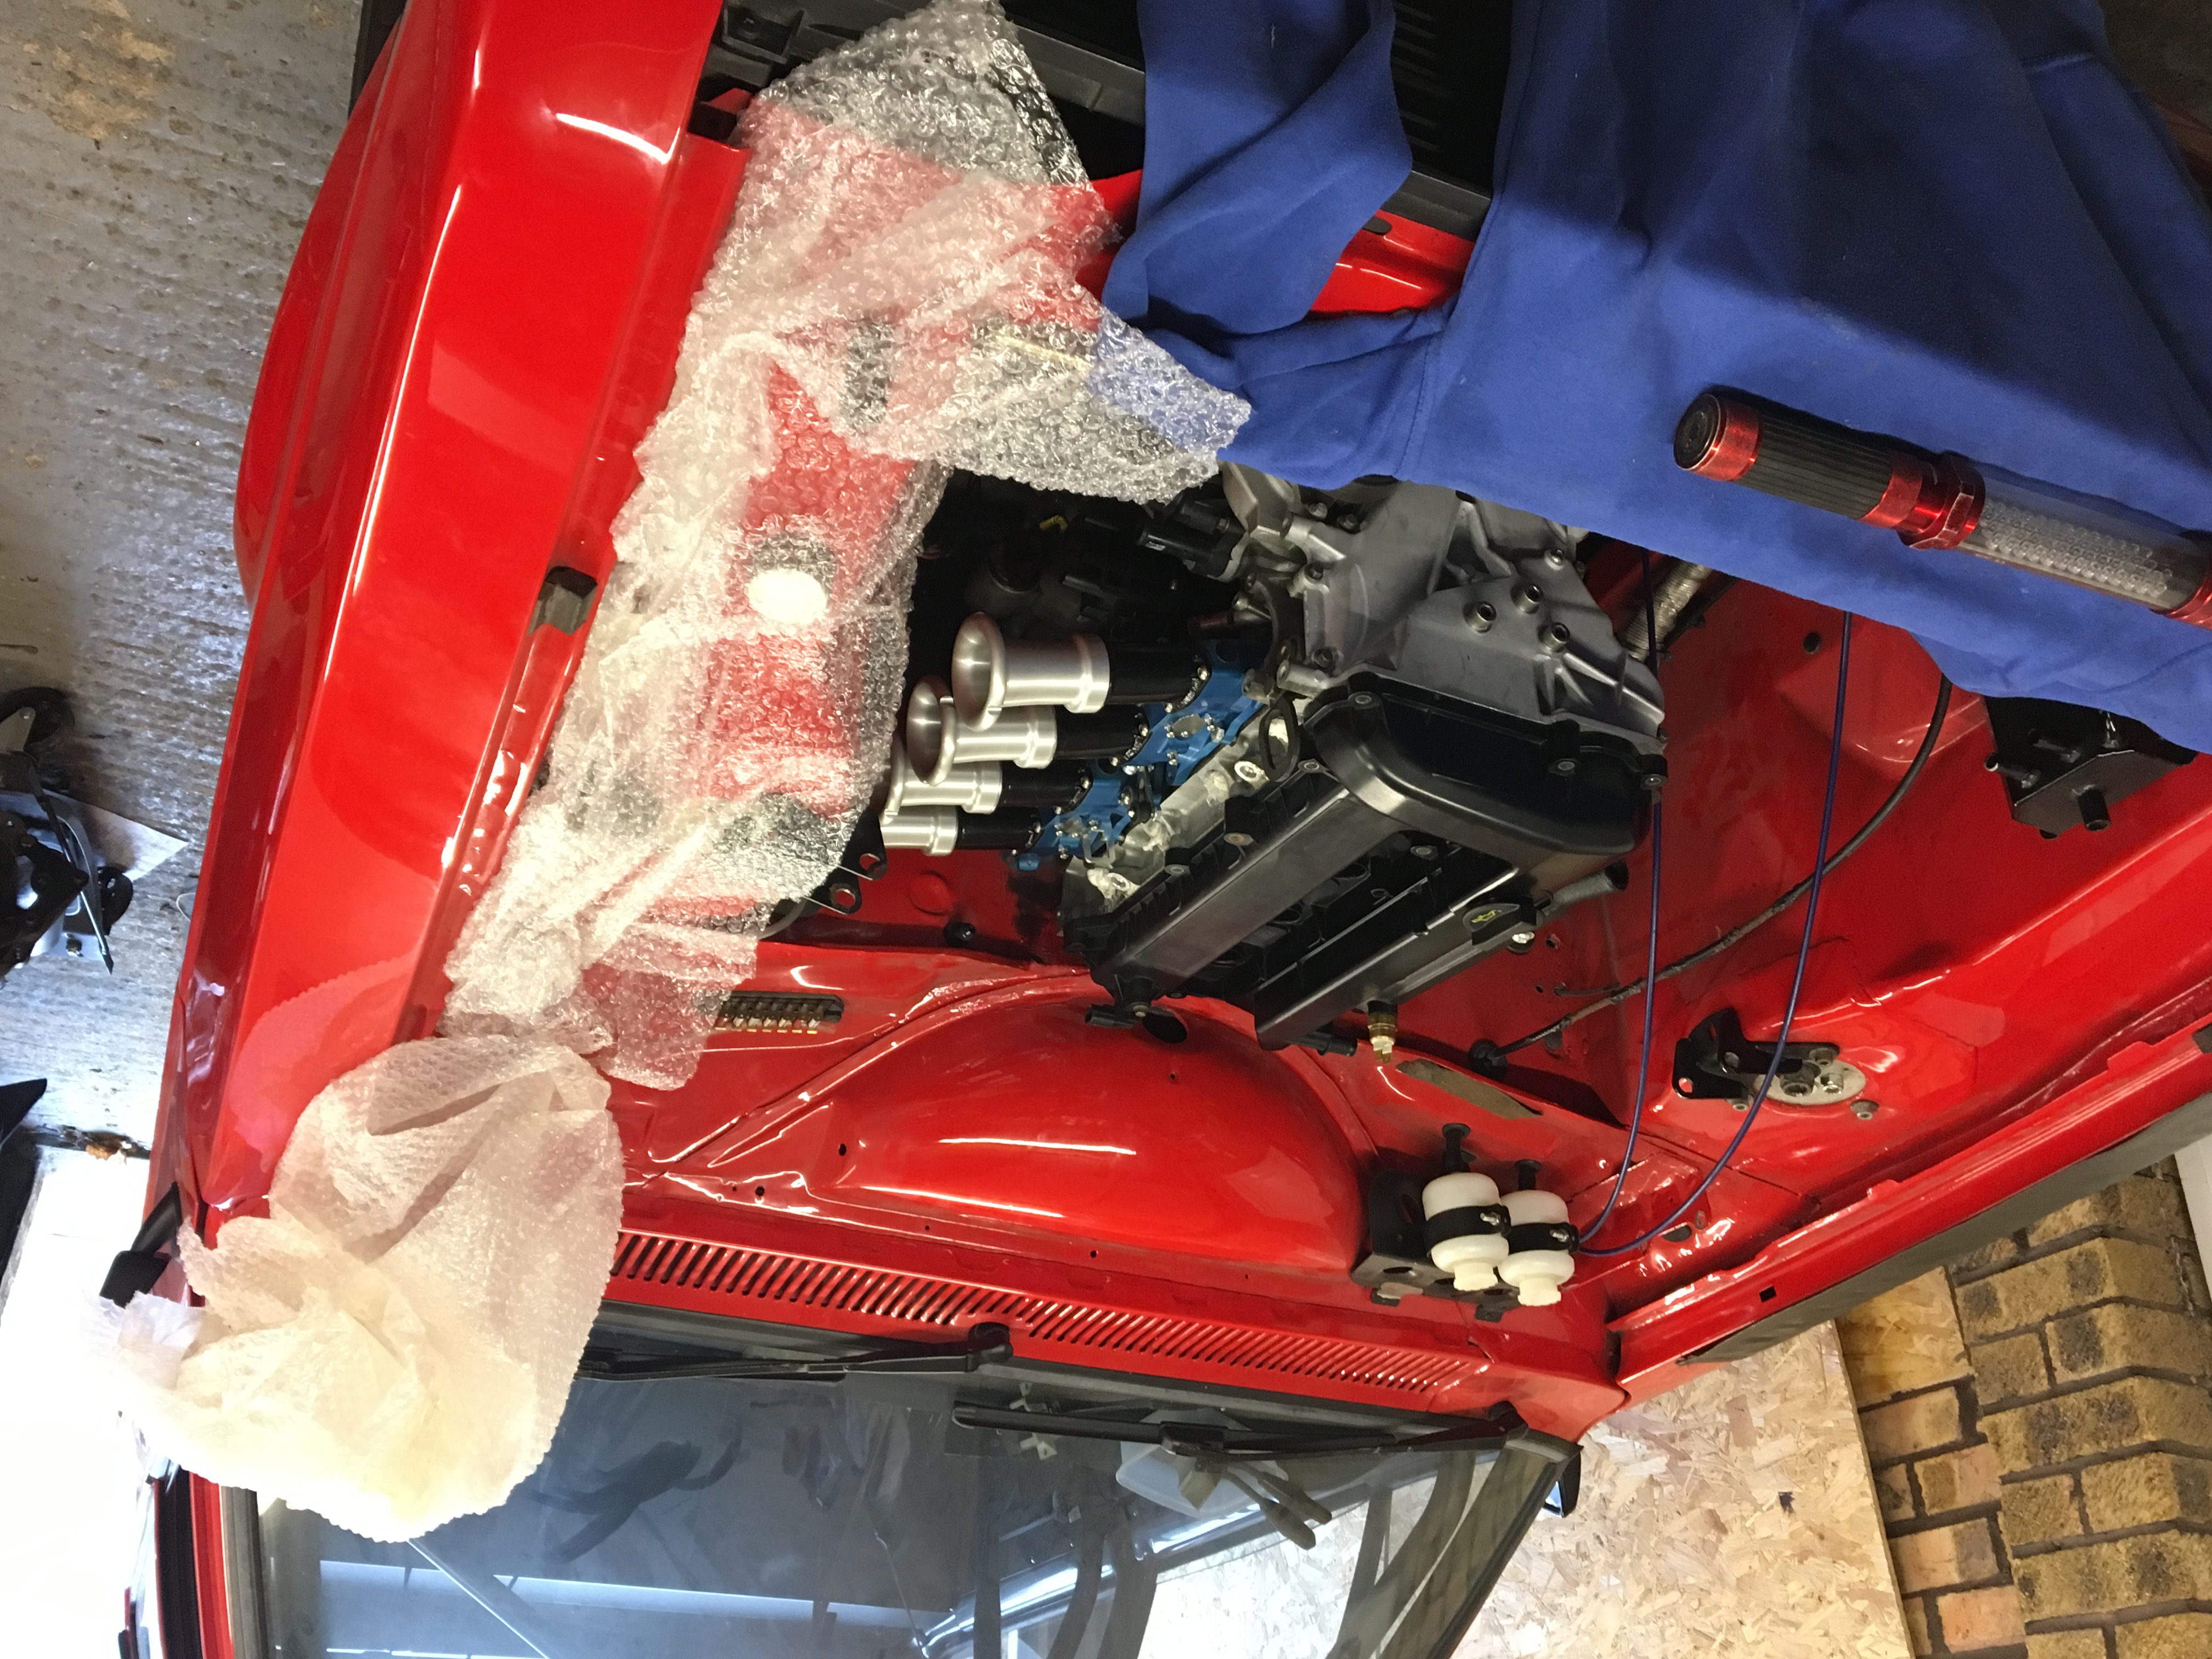 Escort Mk2 Trackday Fun Car Mini R53 Coupe Cooper S Ece Engine Electrical System Various Wiring So The Was Mounted In